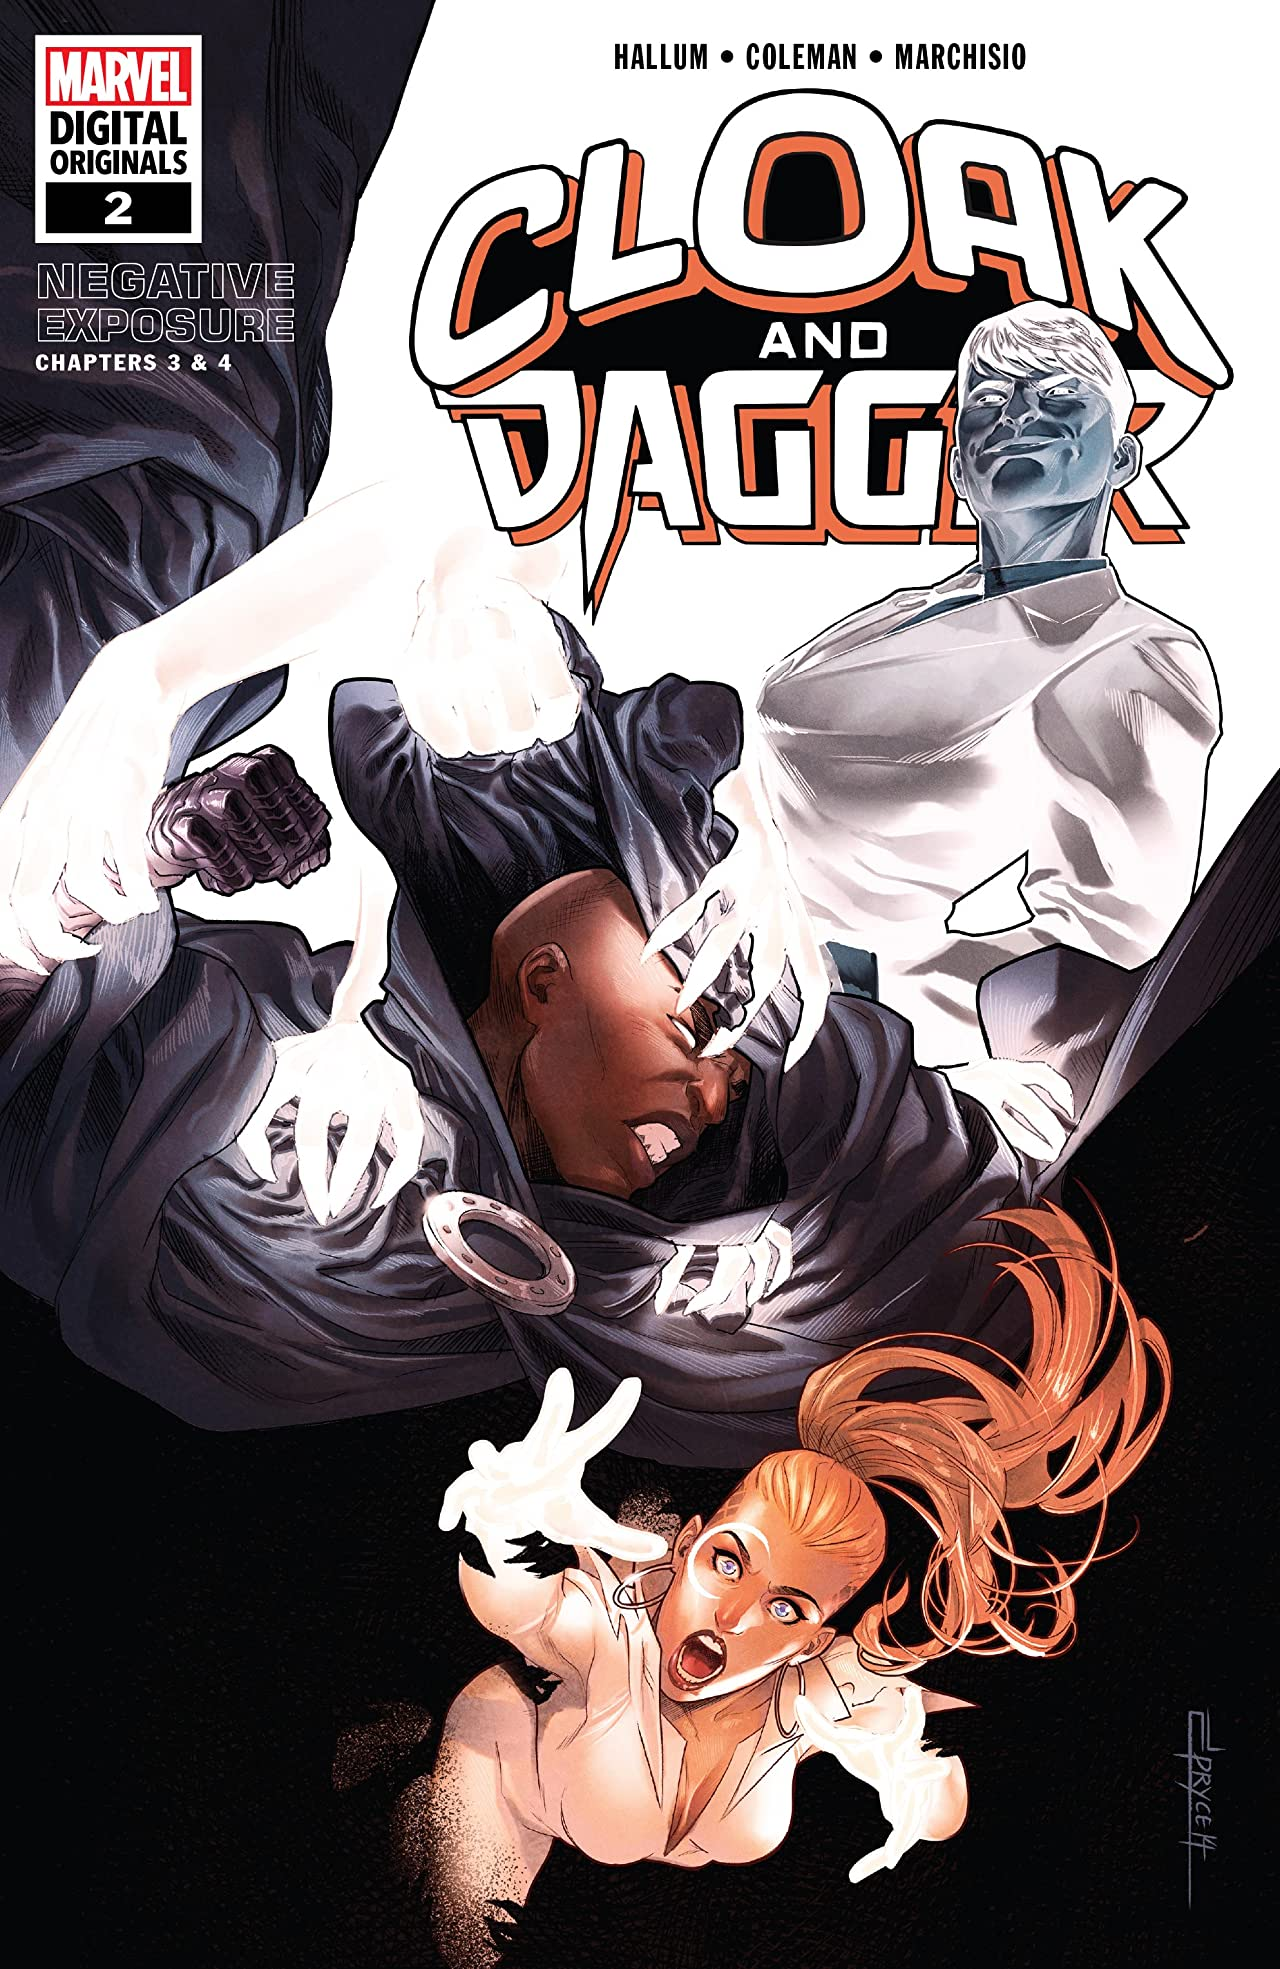 Cloak and Dagger: Negative Exposure - Marvel Digital Original (2018-2019) #2 (of 3)